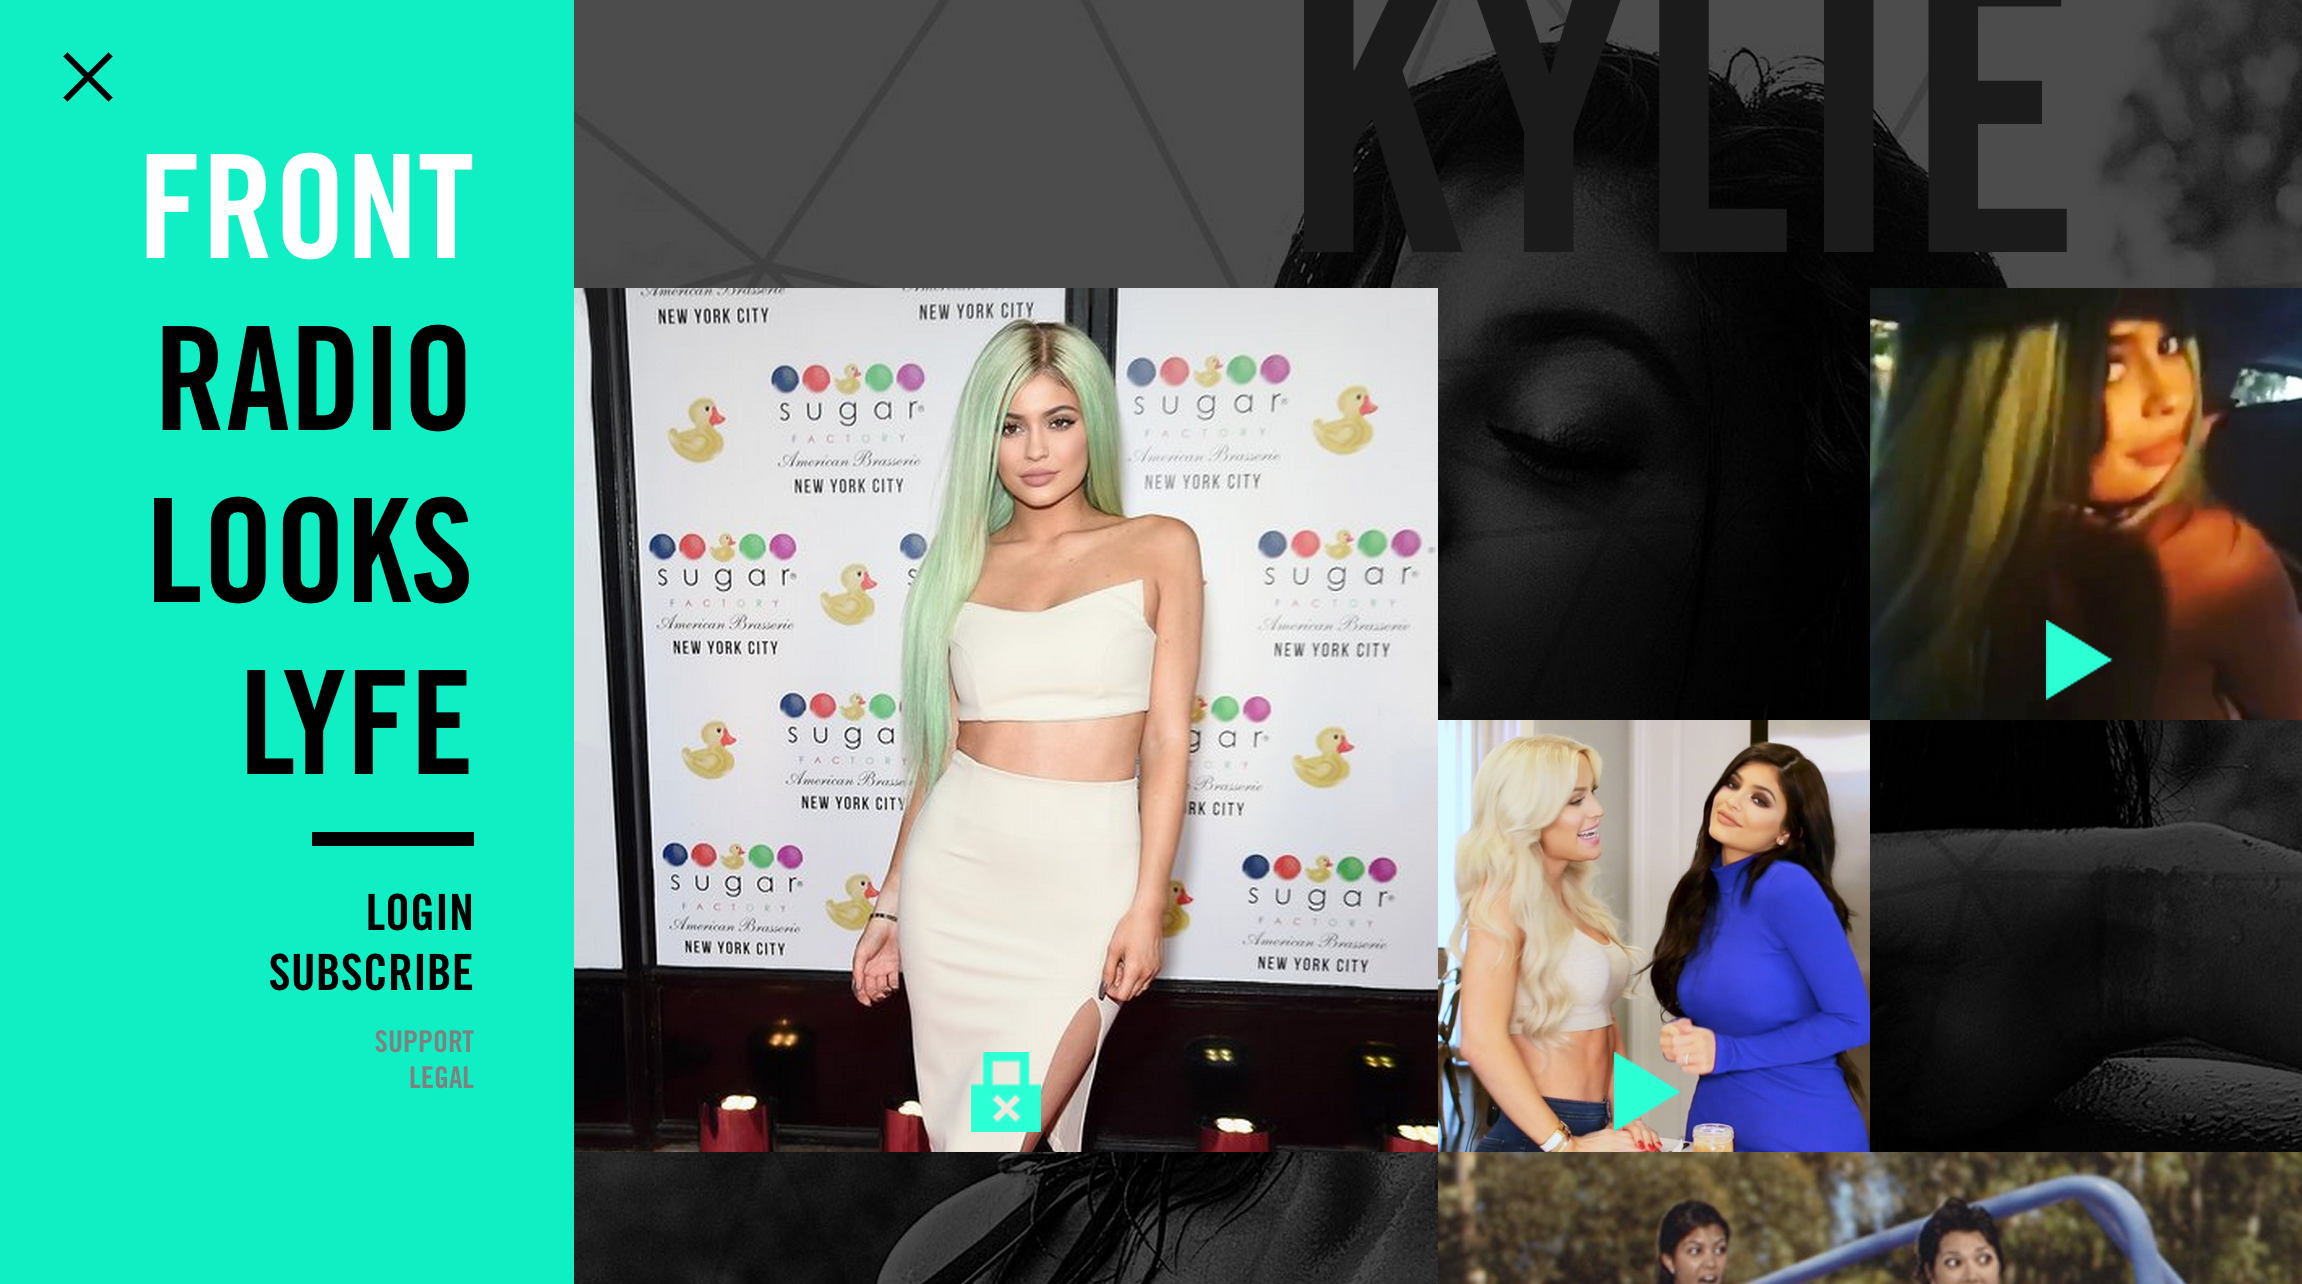 kardashians new websites expose user data screen shot  at pm